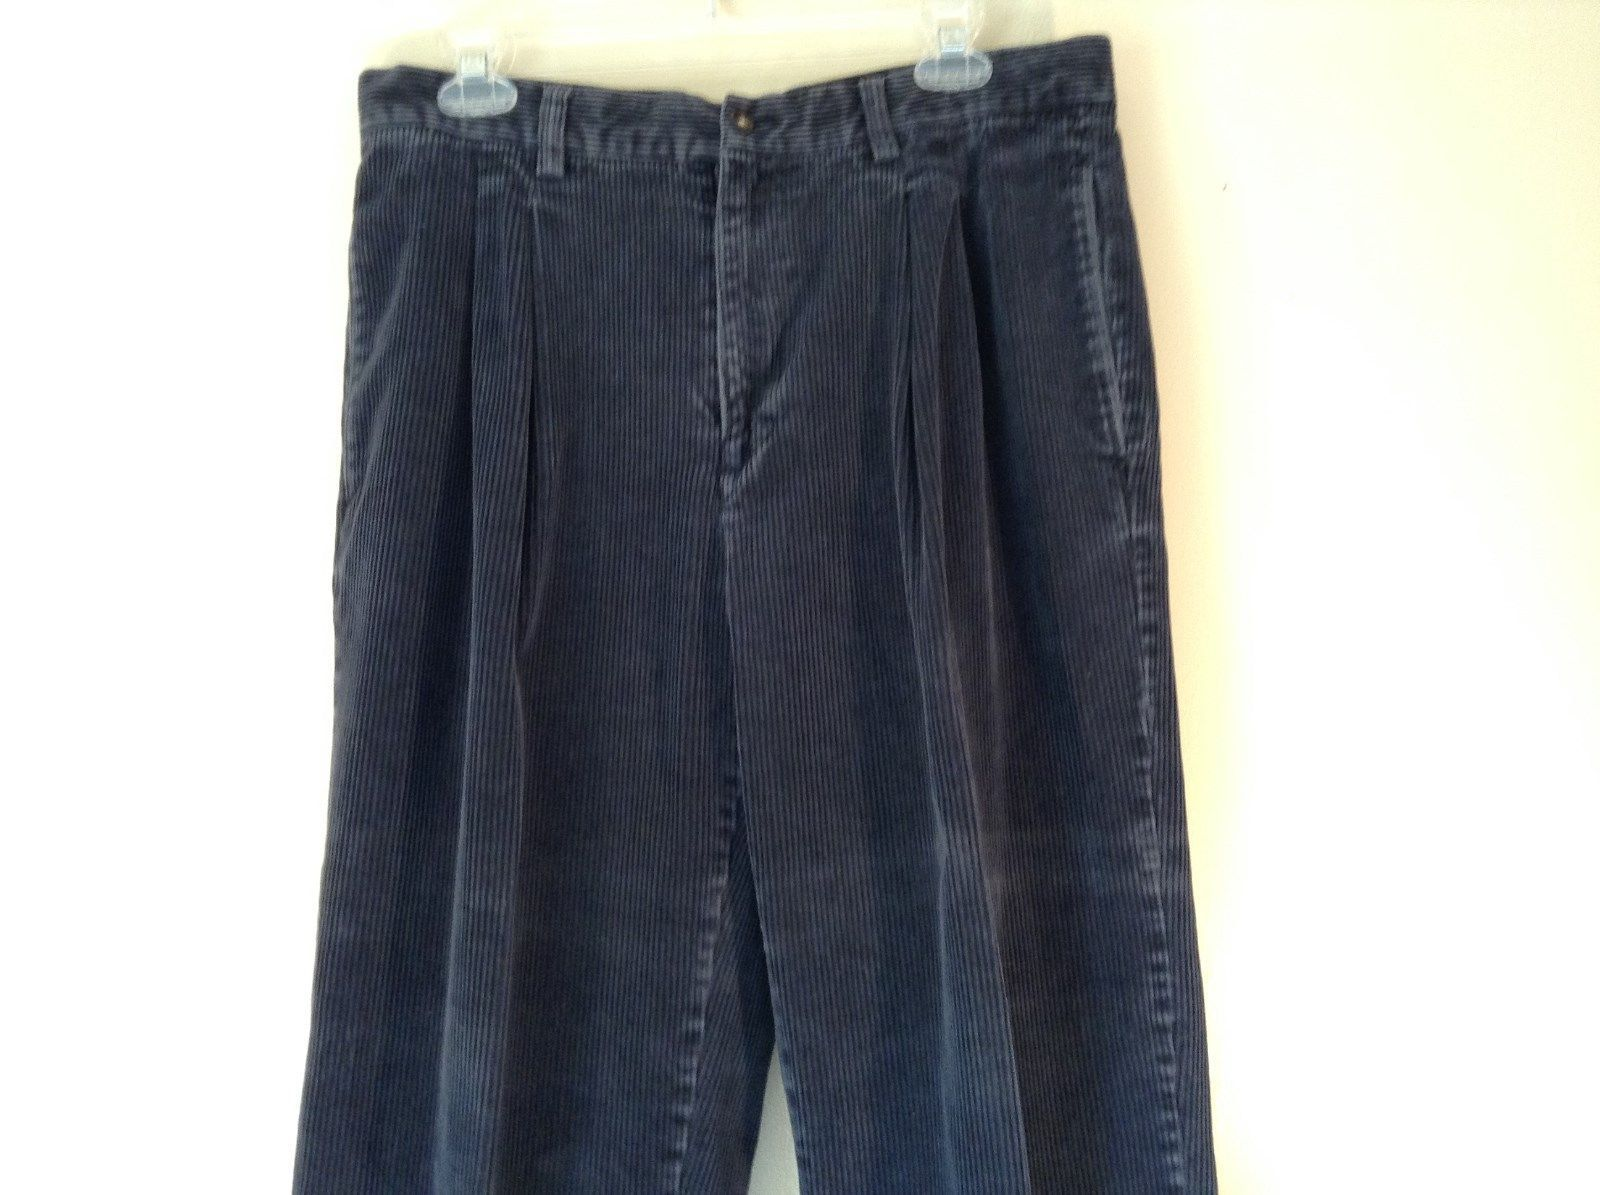 Blue Corduroy GAP Easy Fit Pants Size 34 by 30 Great Condition